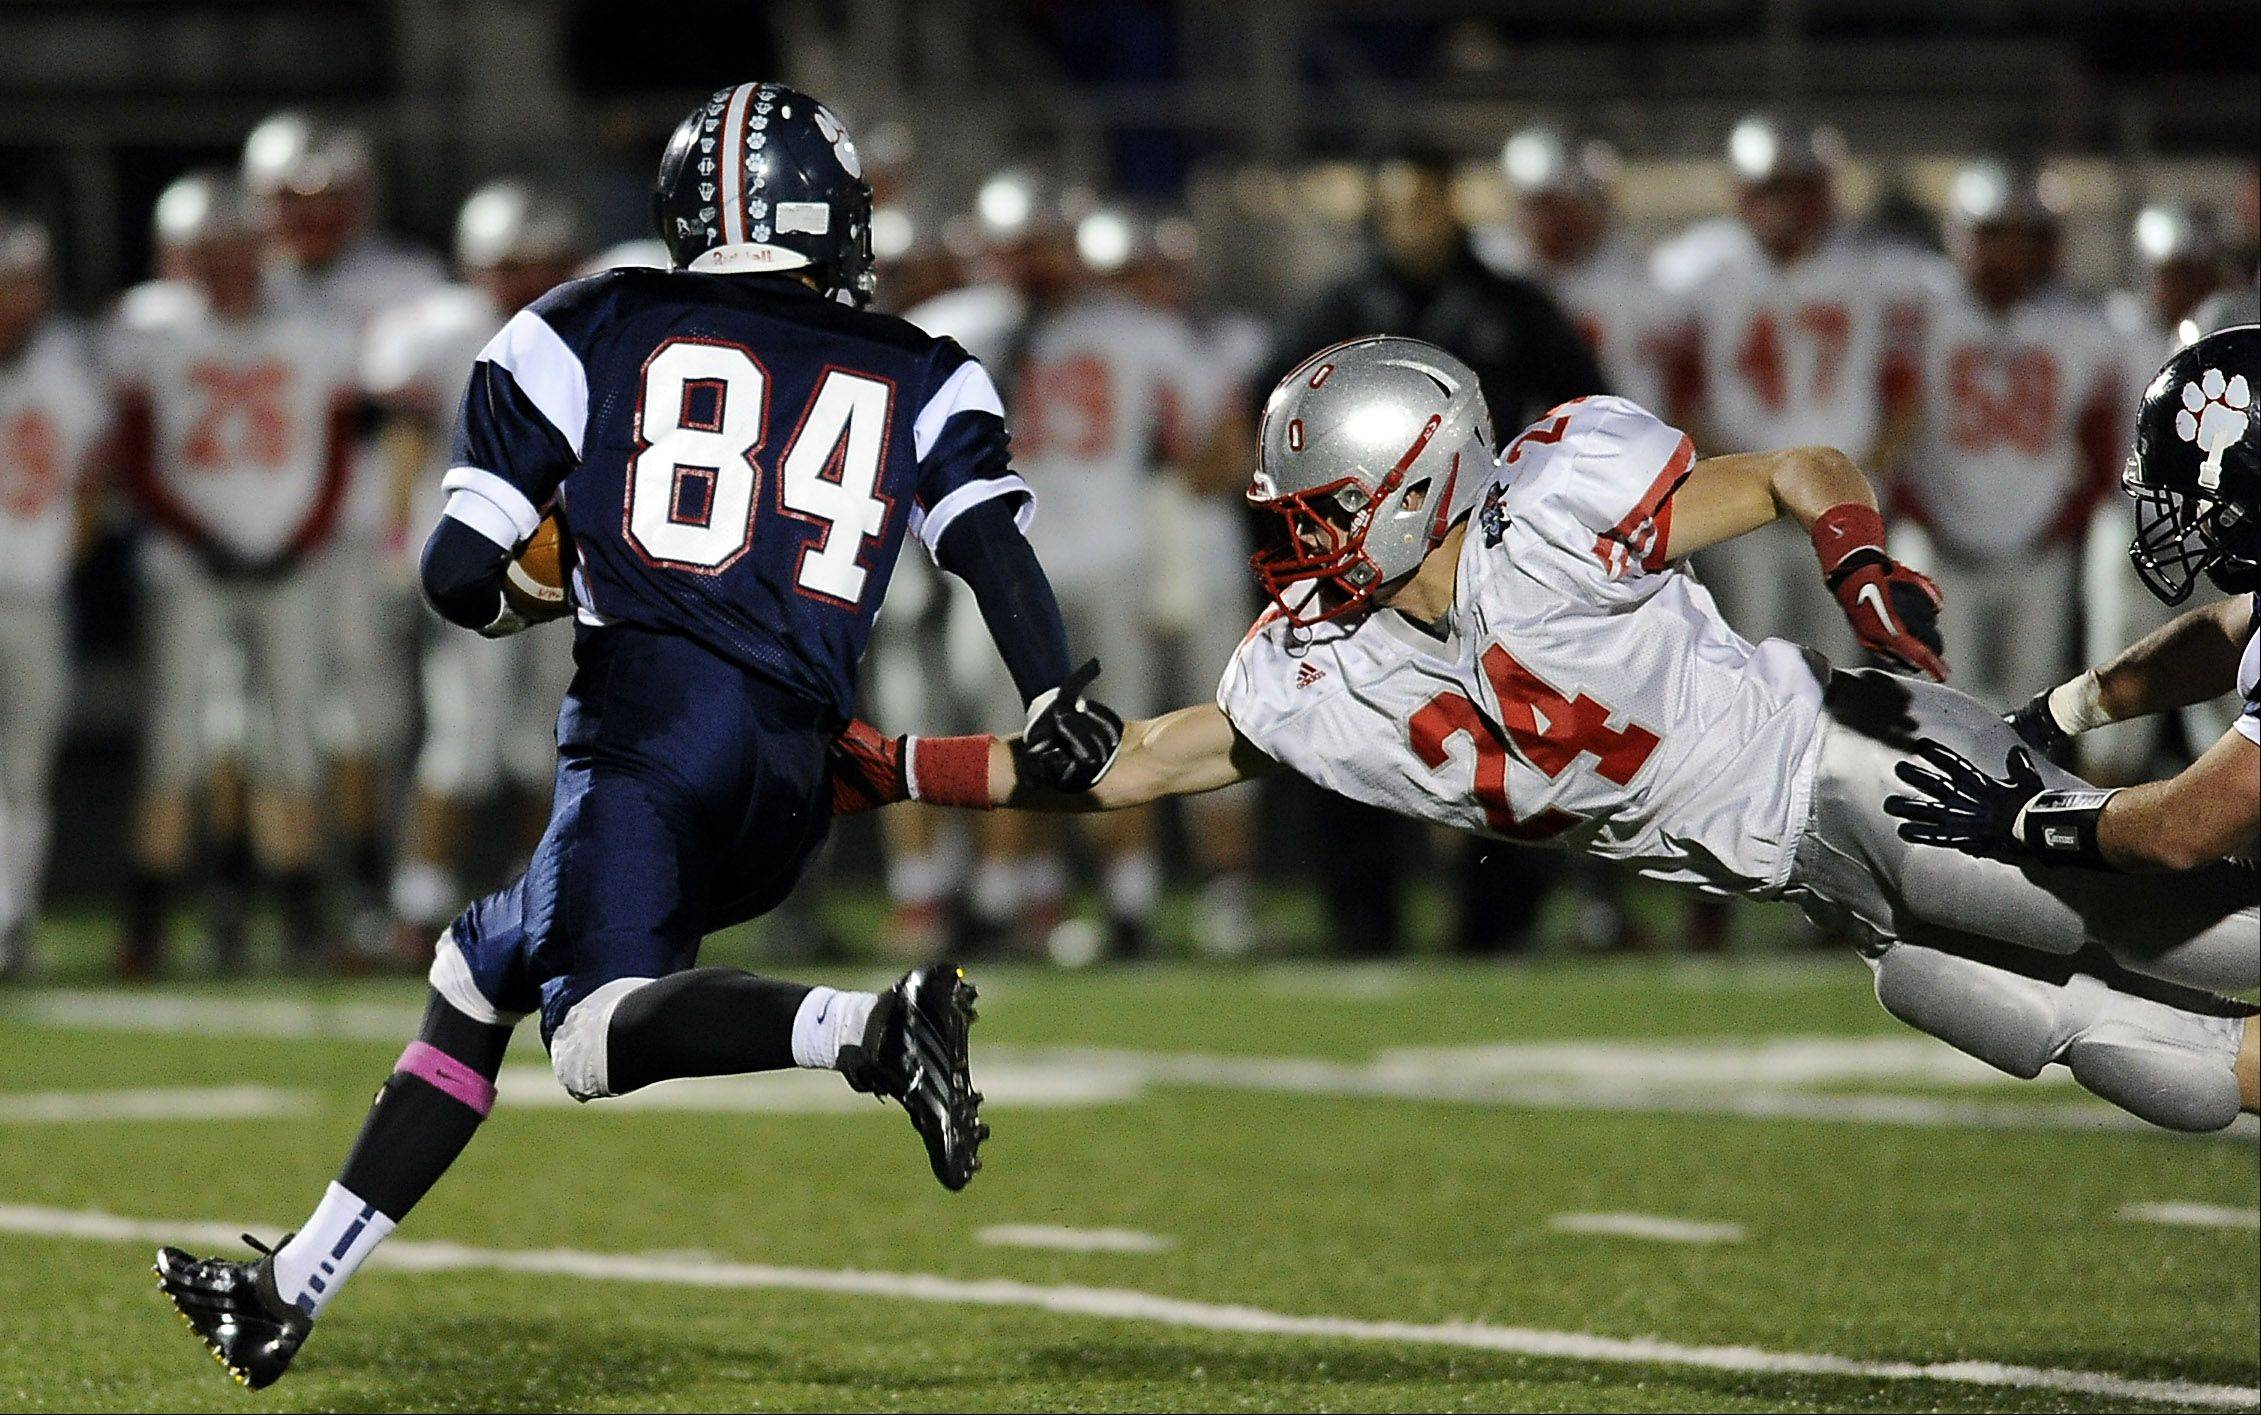 Palatine's Dan Riddle makes an attempt to stop a run by Conant's Tim Manczko.